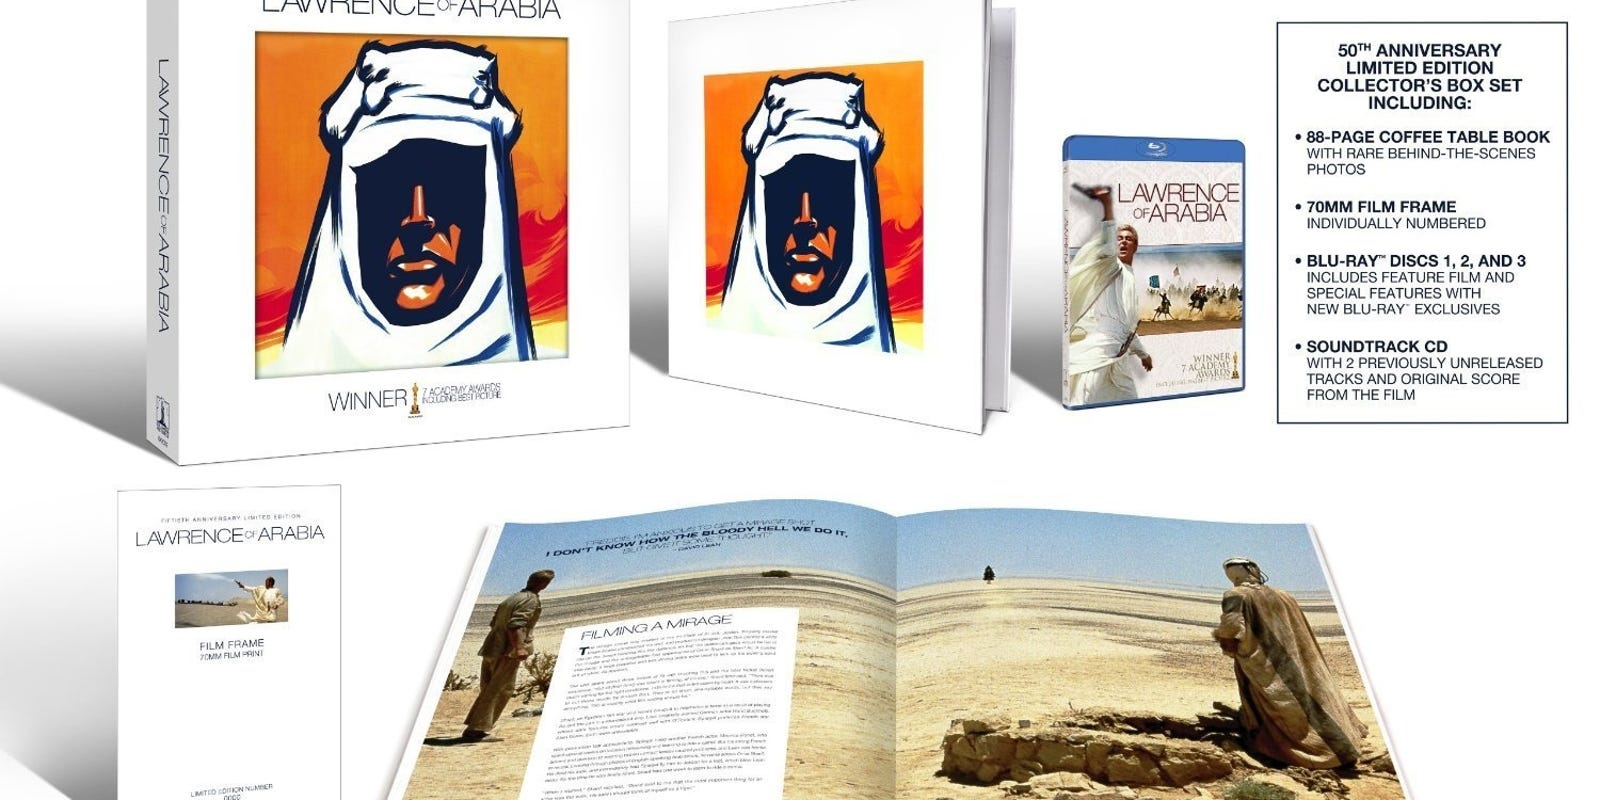 an introduction to the life of lawrence of arabia Te lawrence biography te lawrence gained fame as a british leader of an arab revolt lawrence of arabia the life and legend of lawrence of arabia.